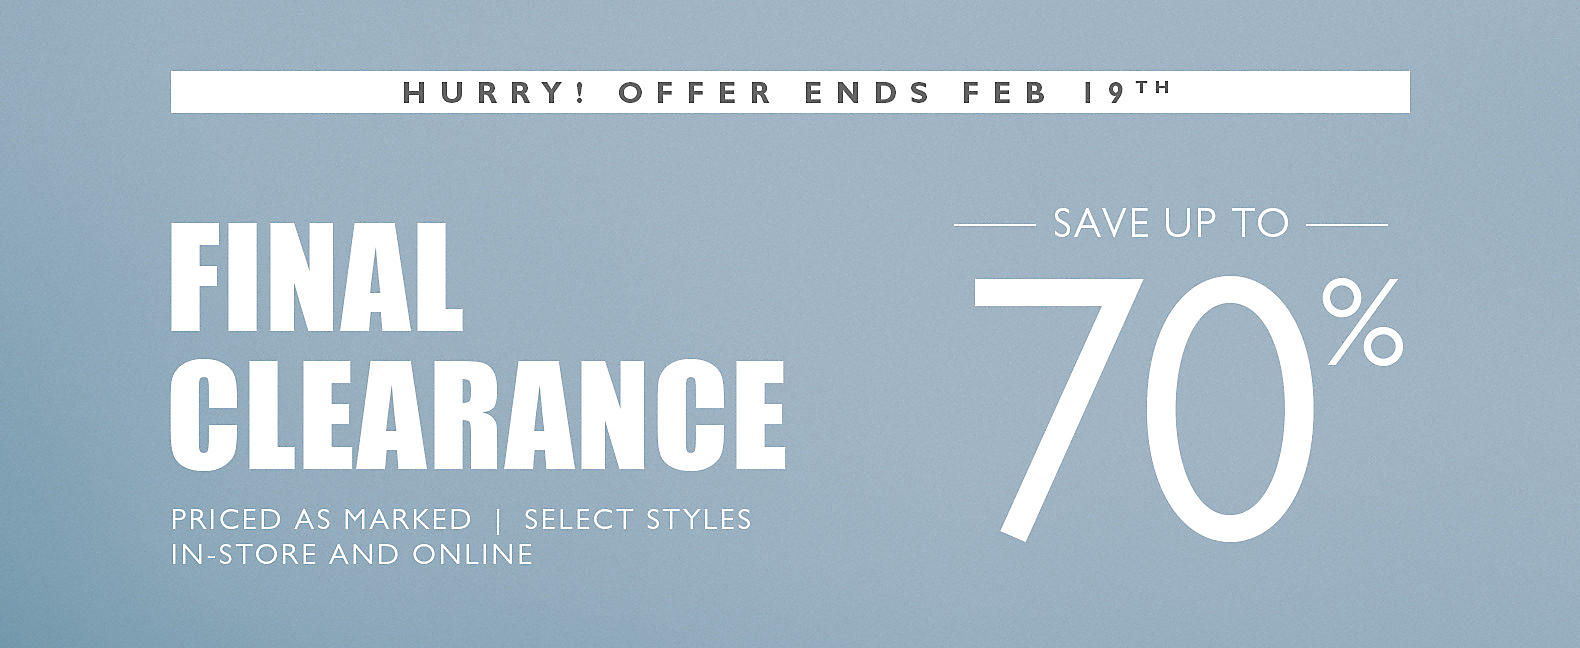 Final Clearance! Save up to 70%